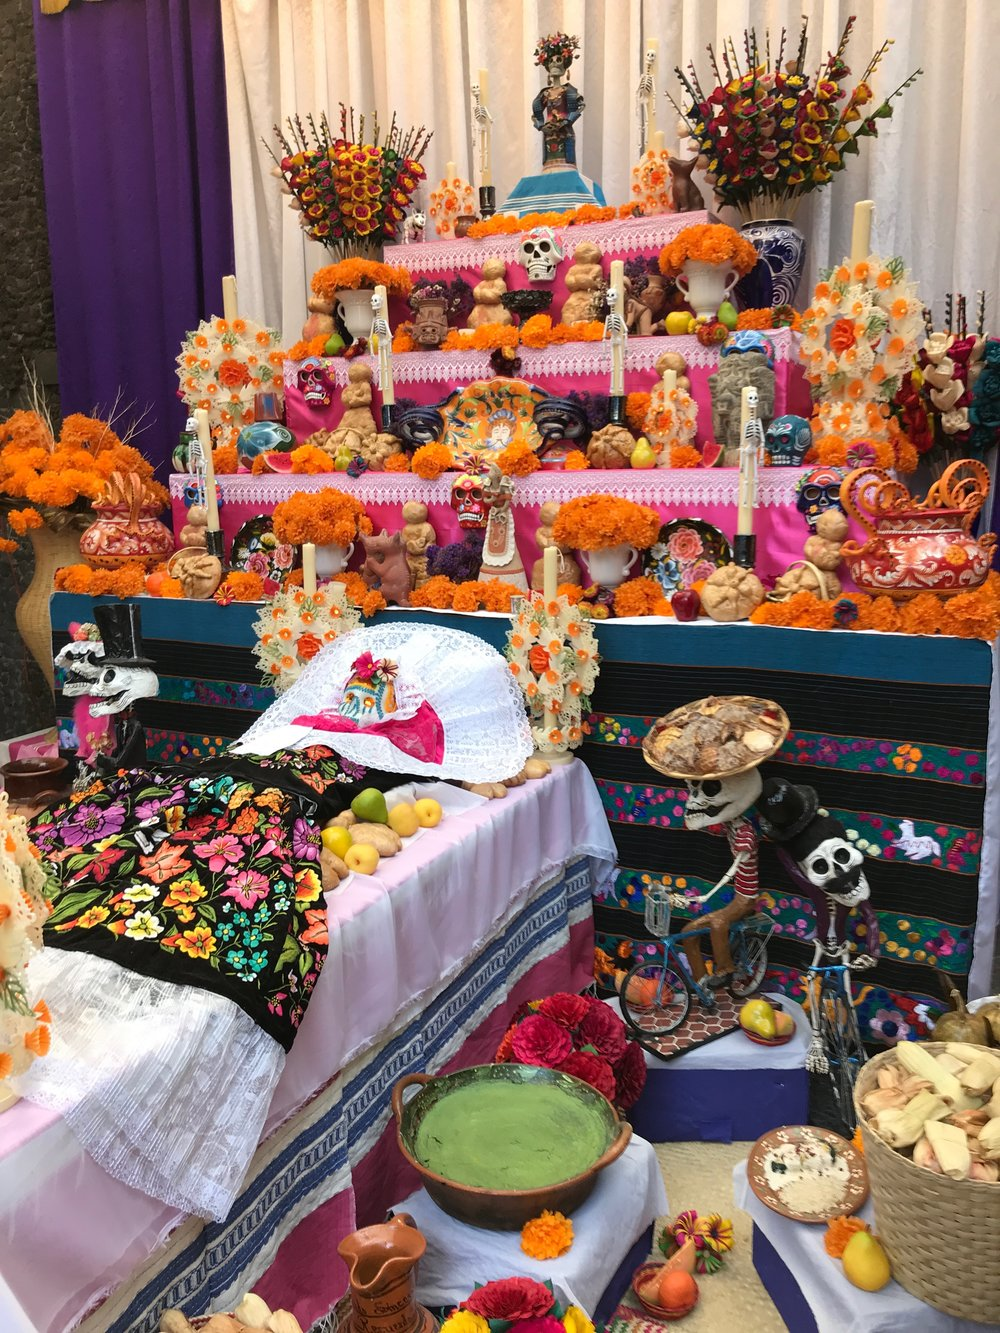 A large ofrenda is set up in the garden